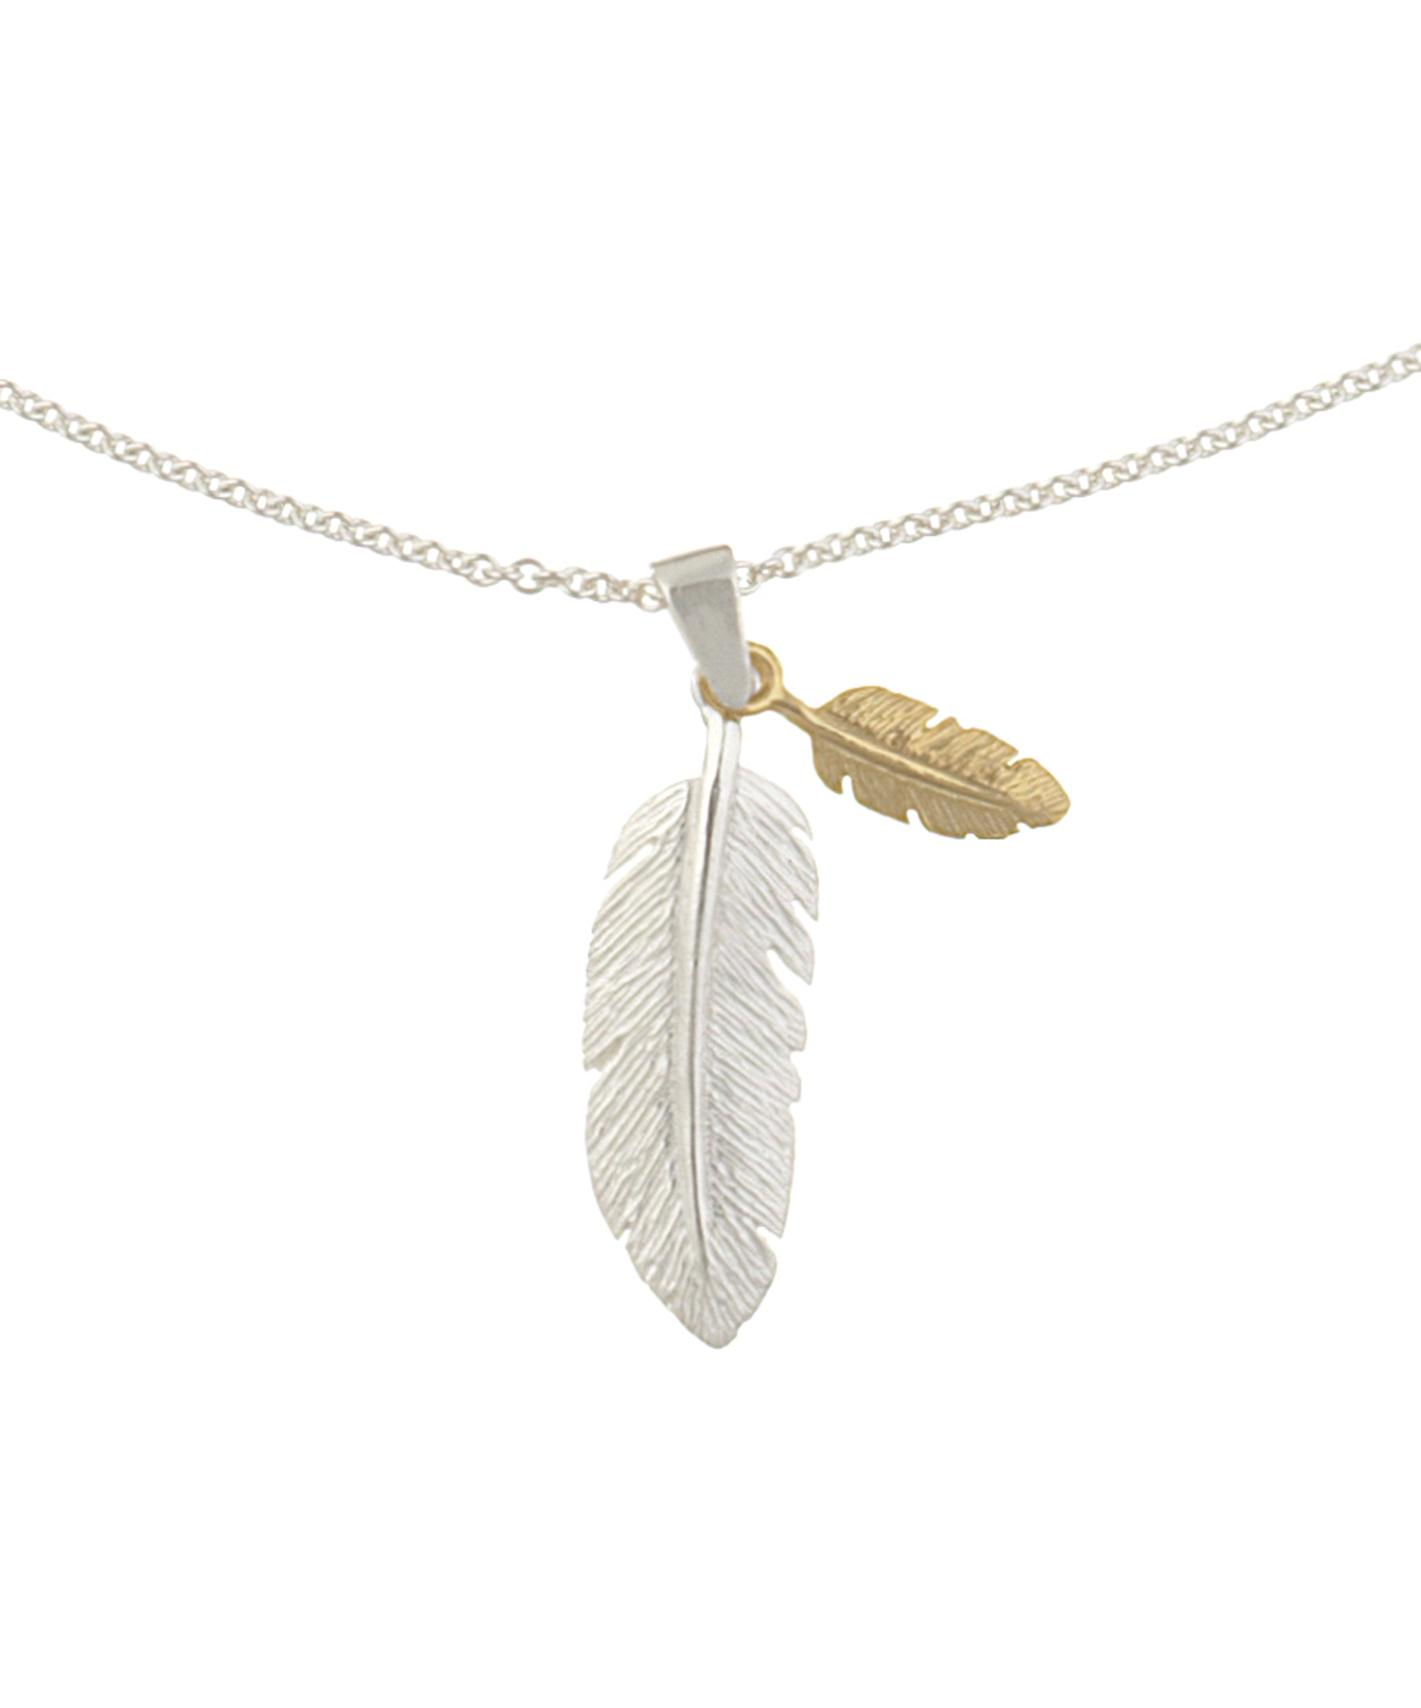 RT @ISWAI_London: Fly higher with our Silver & Gold Double Feather necklace - designed and handmade in #London.  http://t.co/8kCM1nHvat htt…